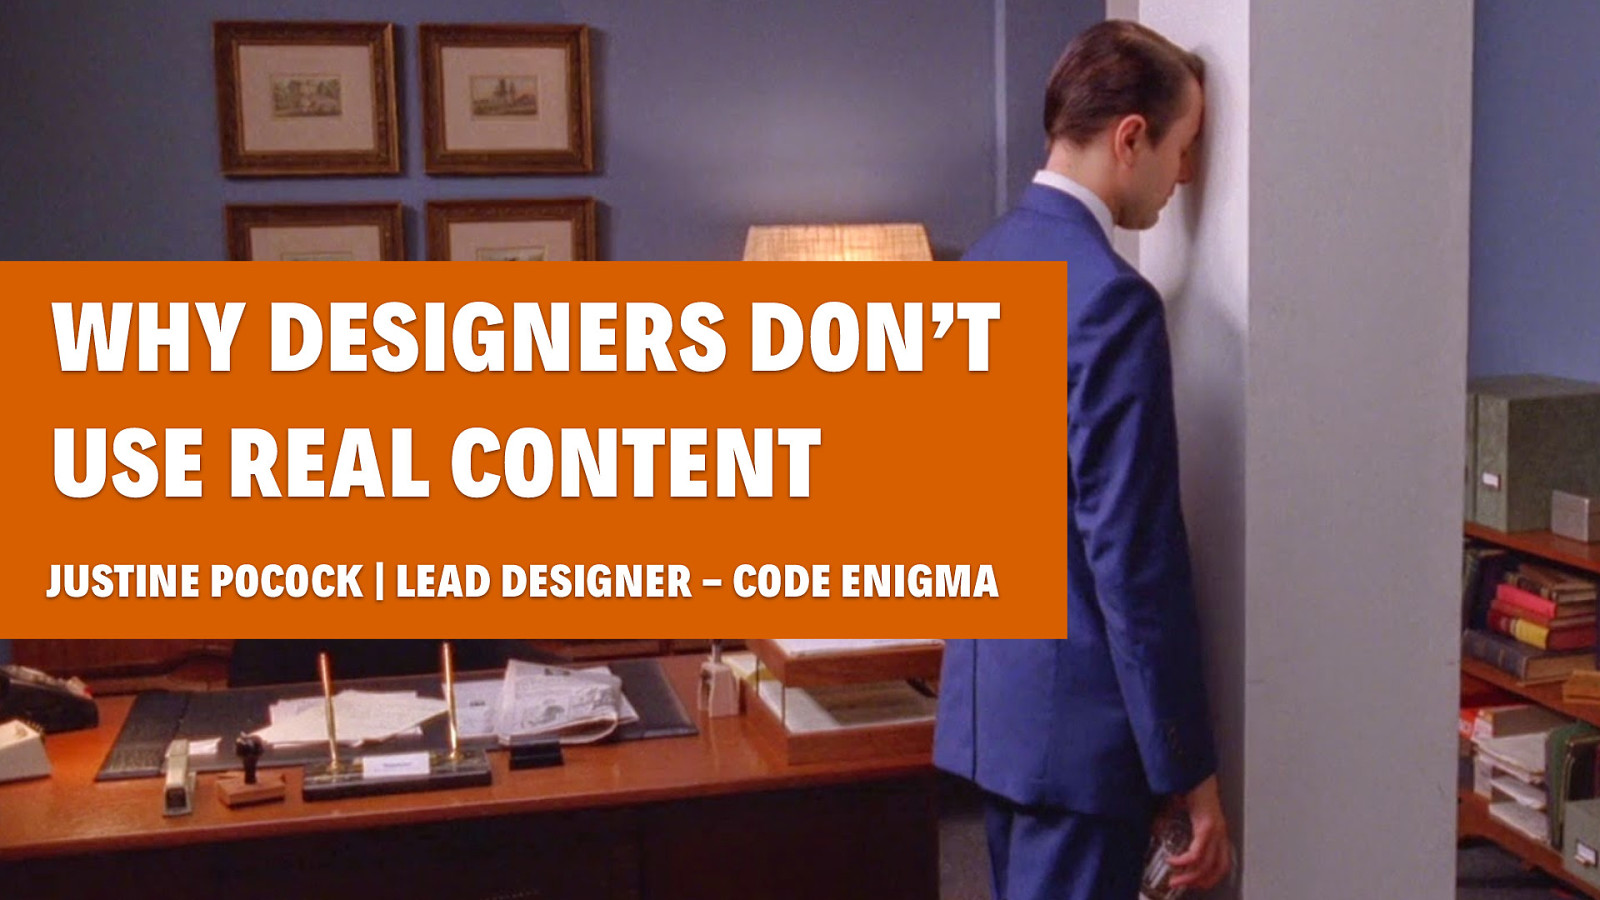 Why don't designers use real content?